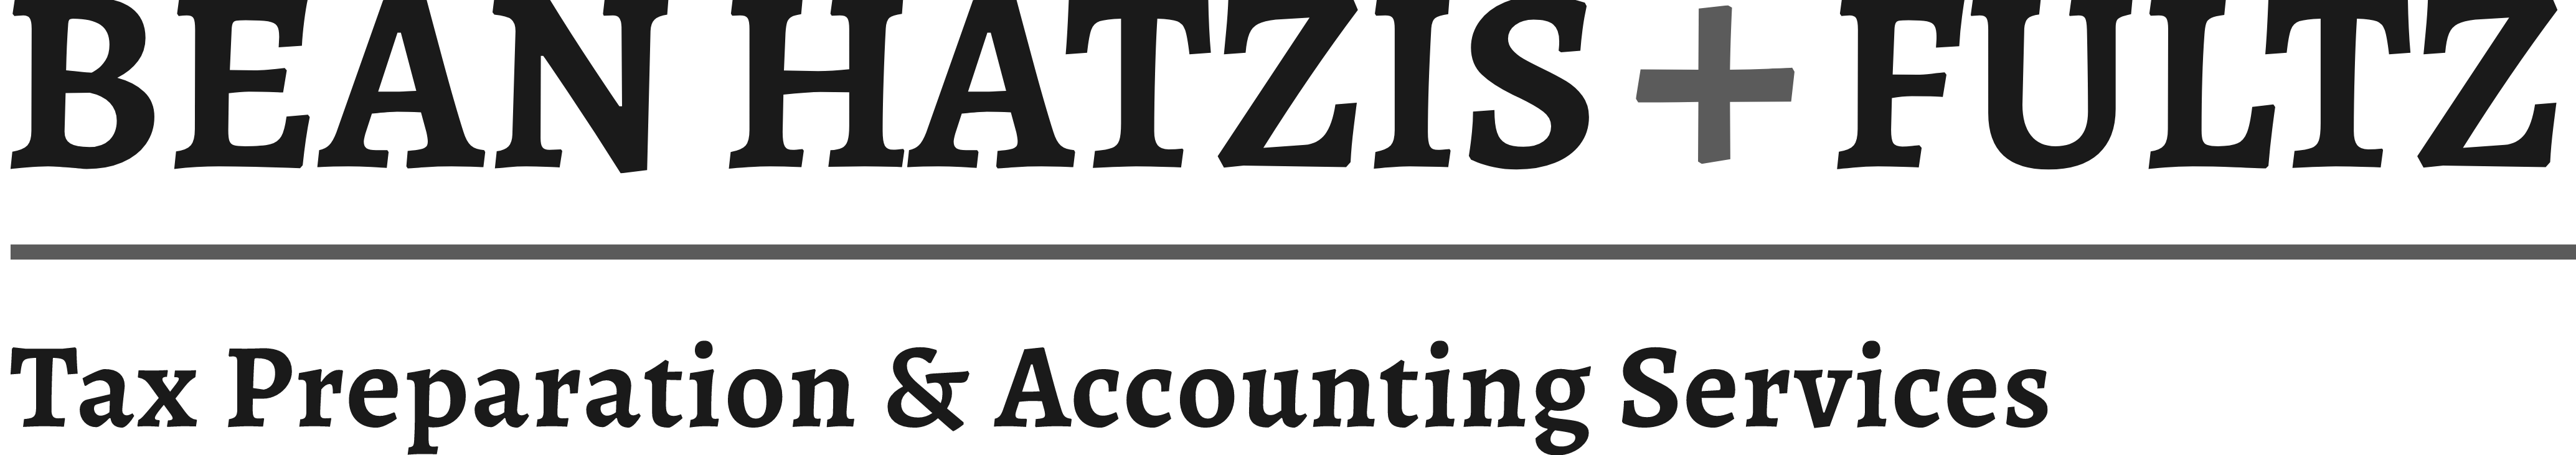 Salem, MA Tax Preparation Firm | Privacy Policy Page | Bean Hatzis & Fultz